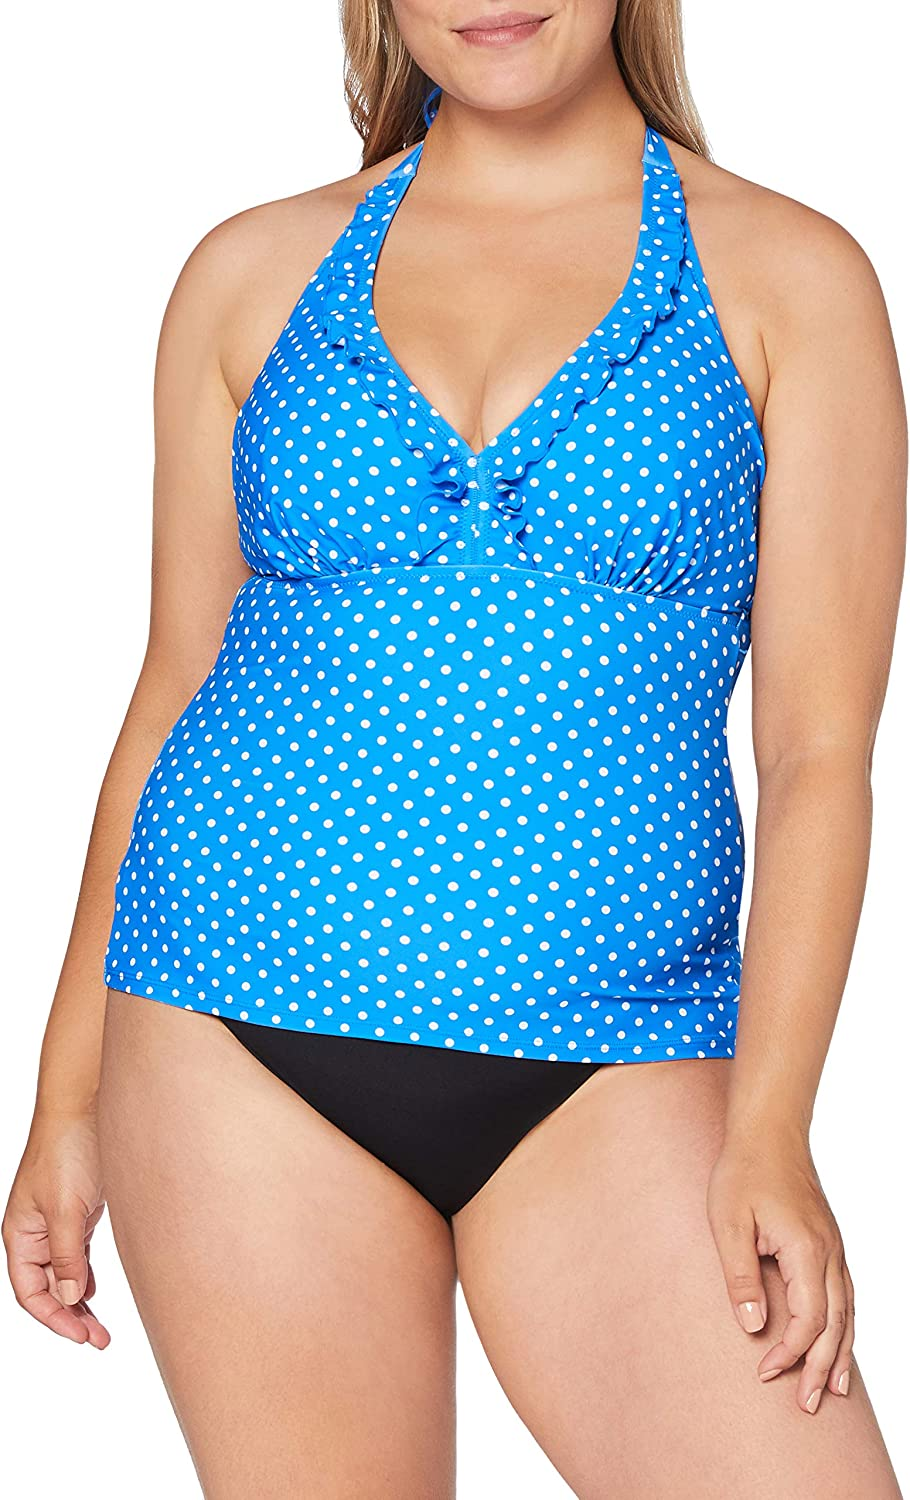 Pour Moi Hot Spots Underwired Tankini Top Donna